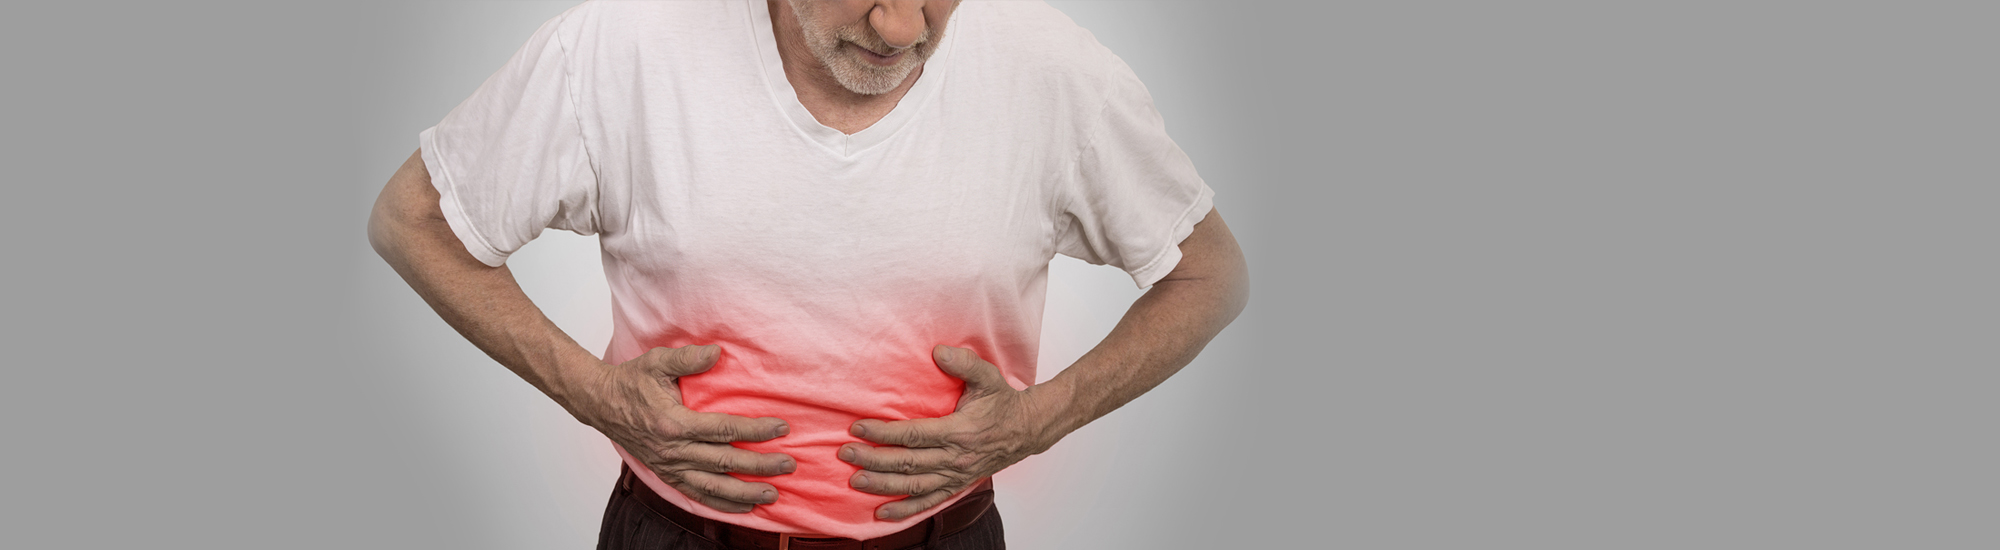 Ayurvedic treatment for Bowel control problems -Fecal incontinence- Symptoms